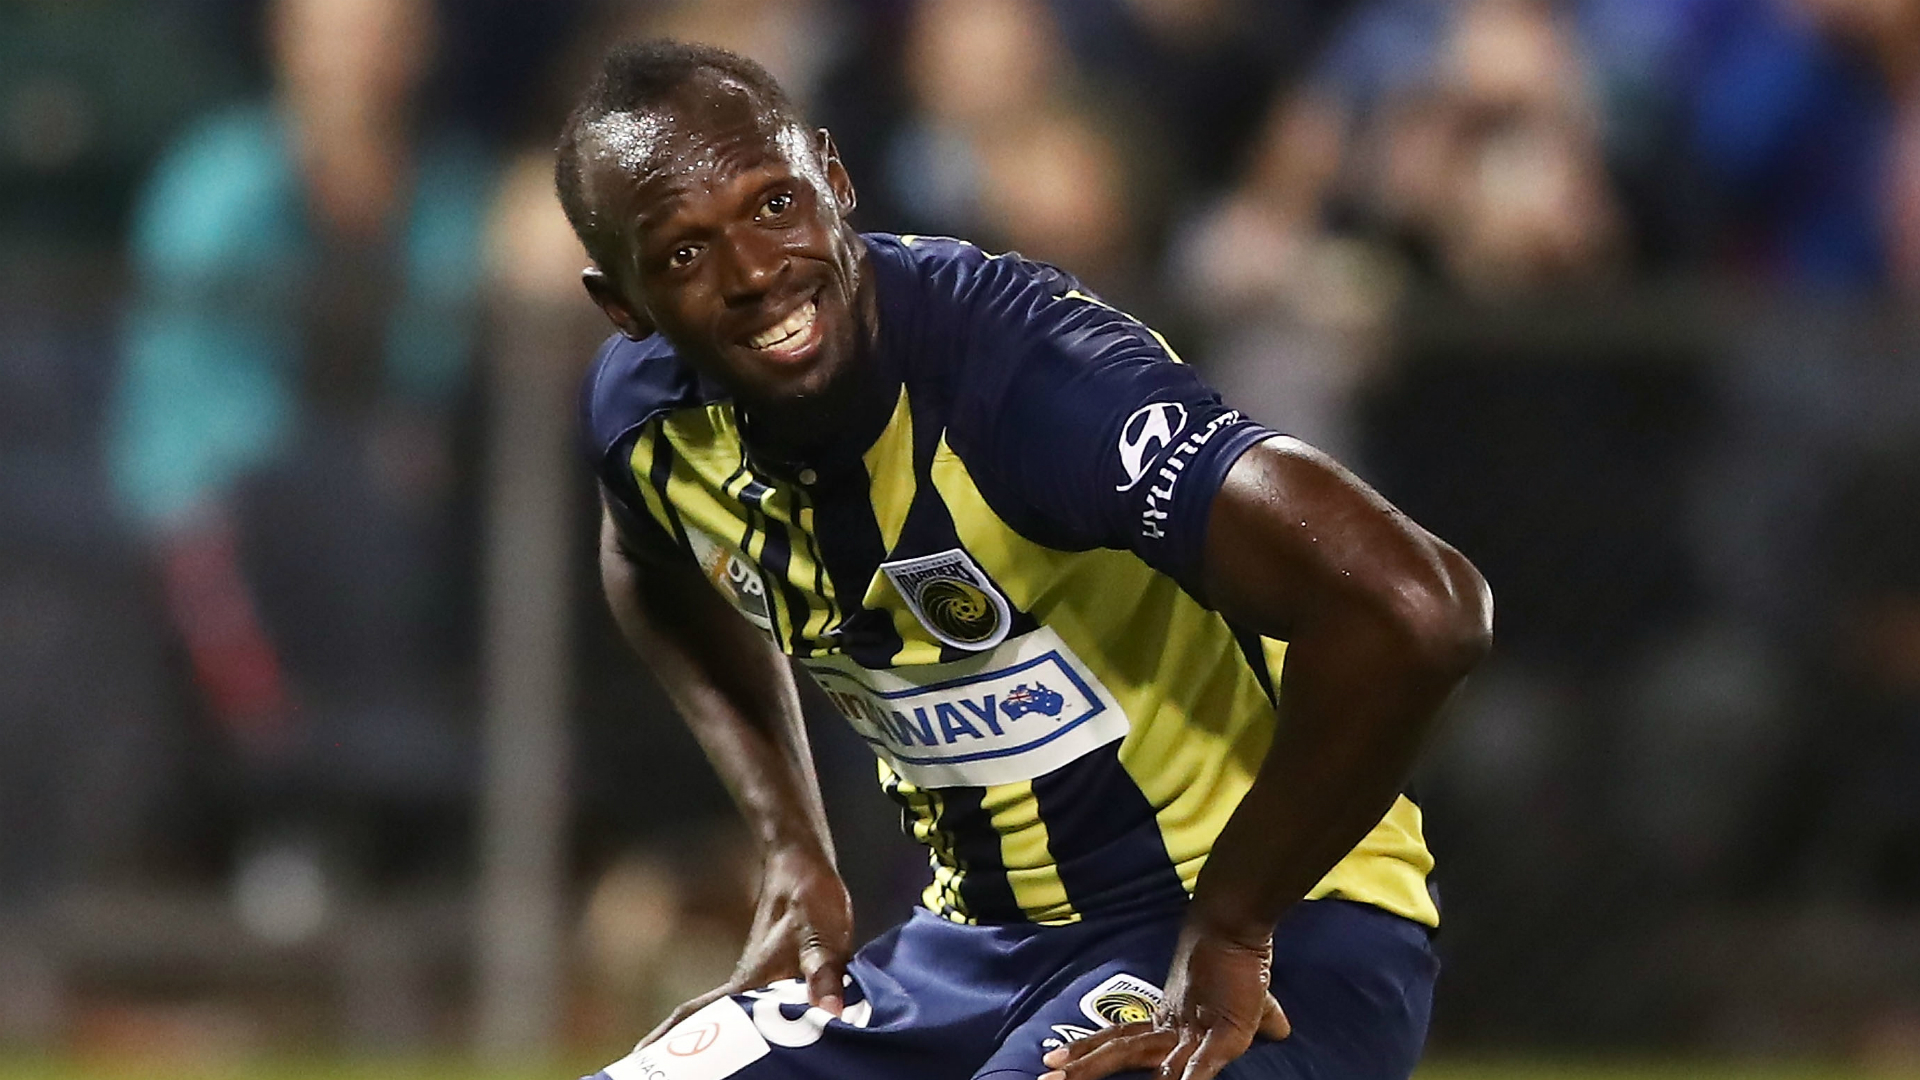 Usain Bolt offered two year contract with Champions League-chasing side sources